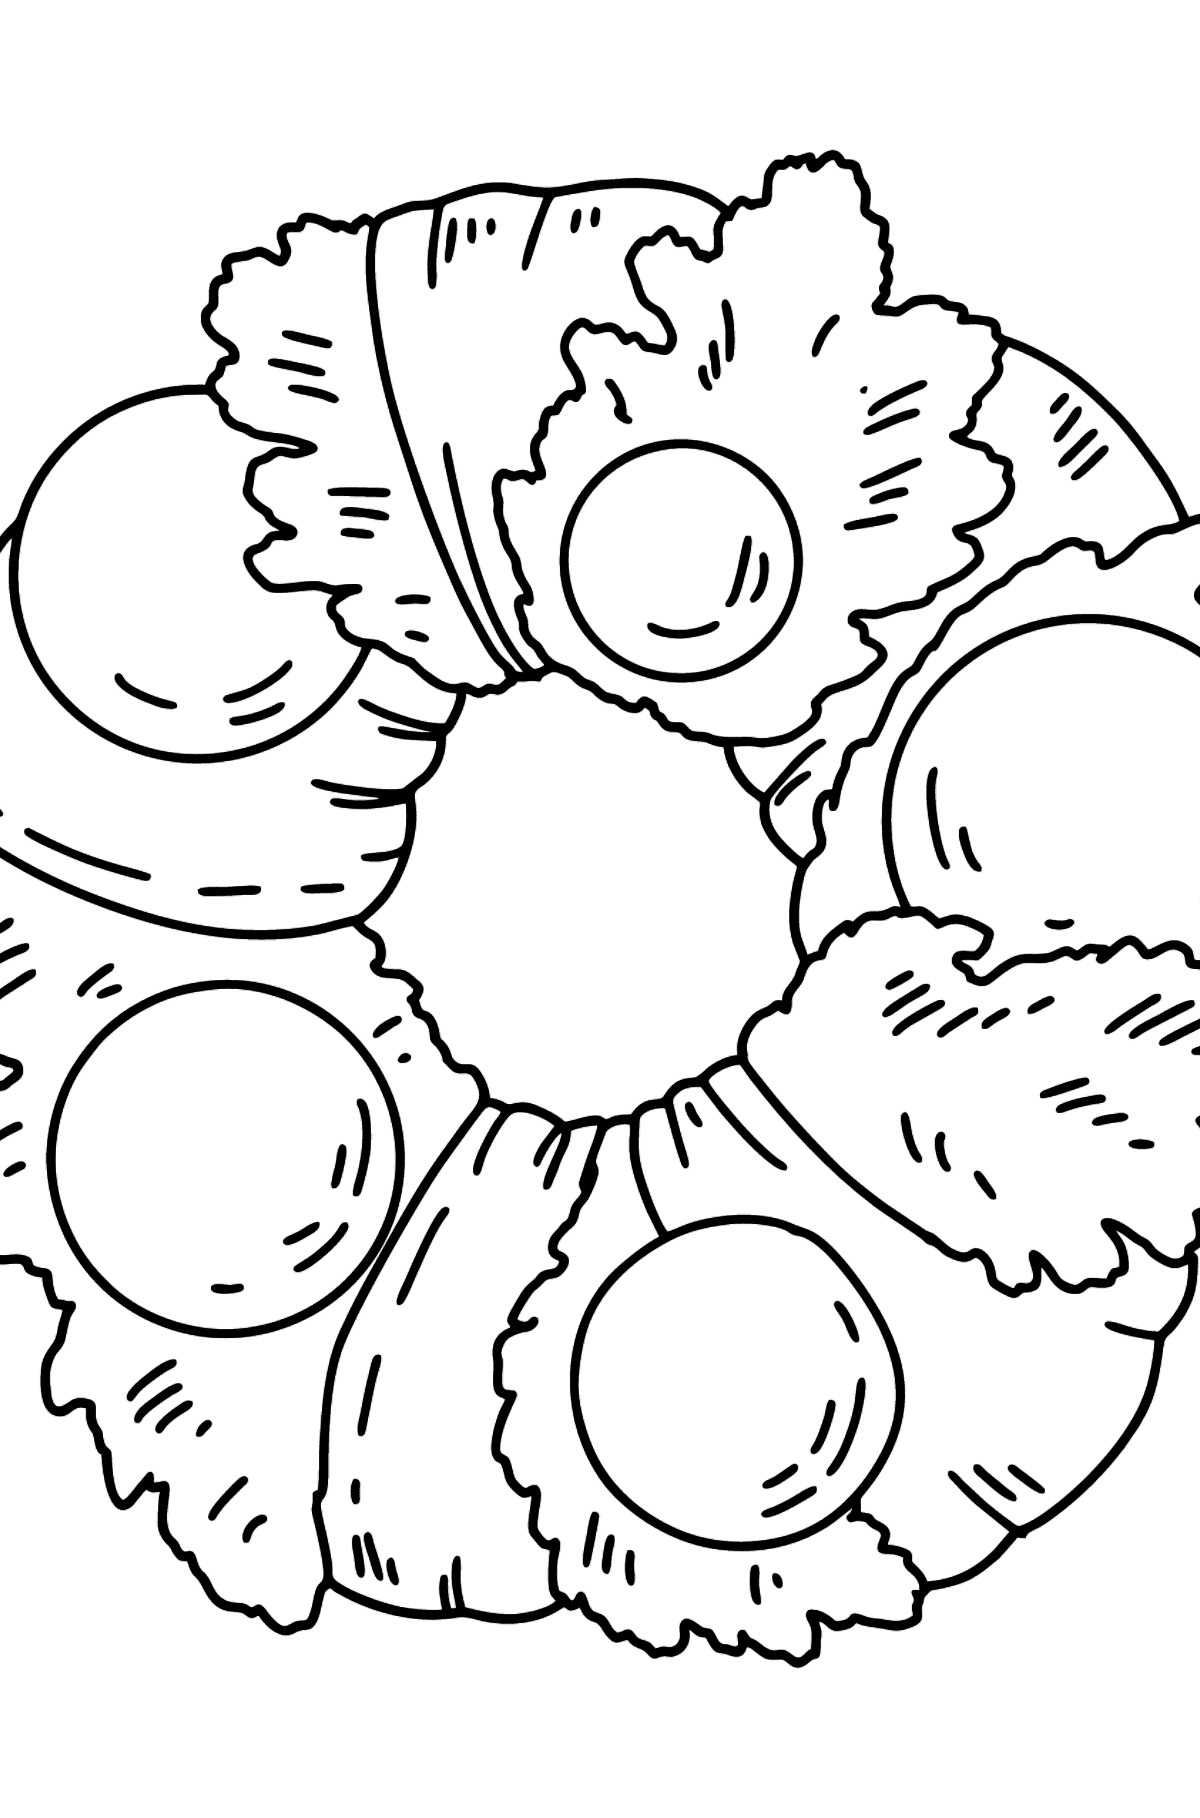 Christmas Wreath coloring page - Coloring Pages for Kids